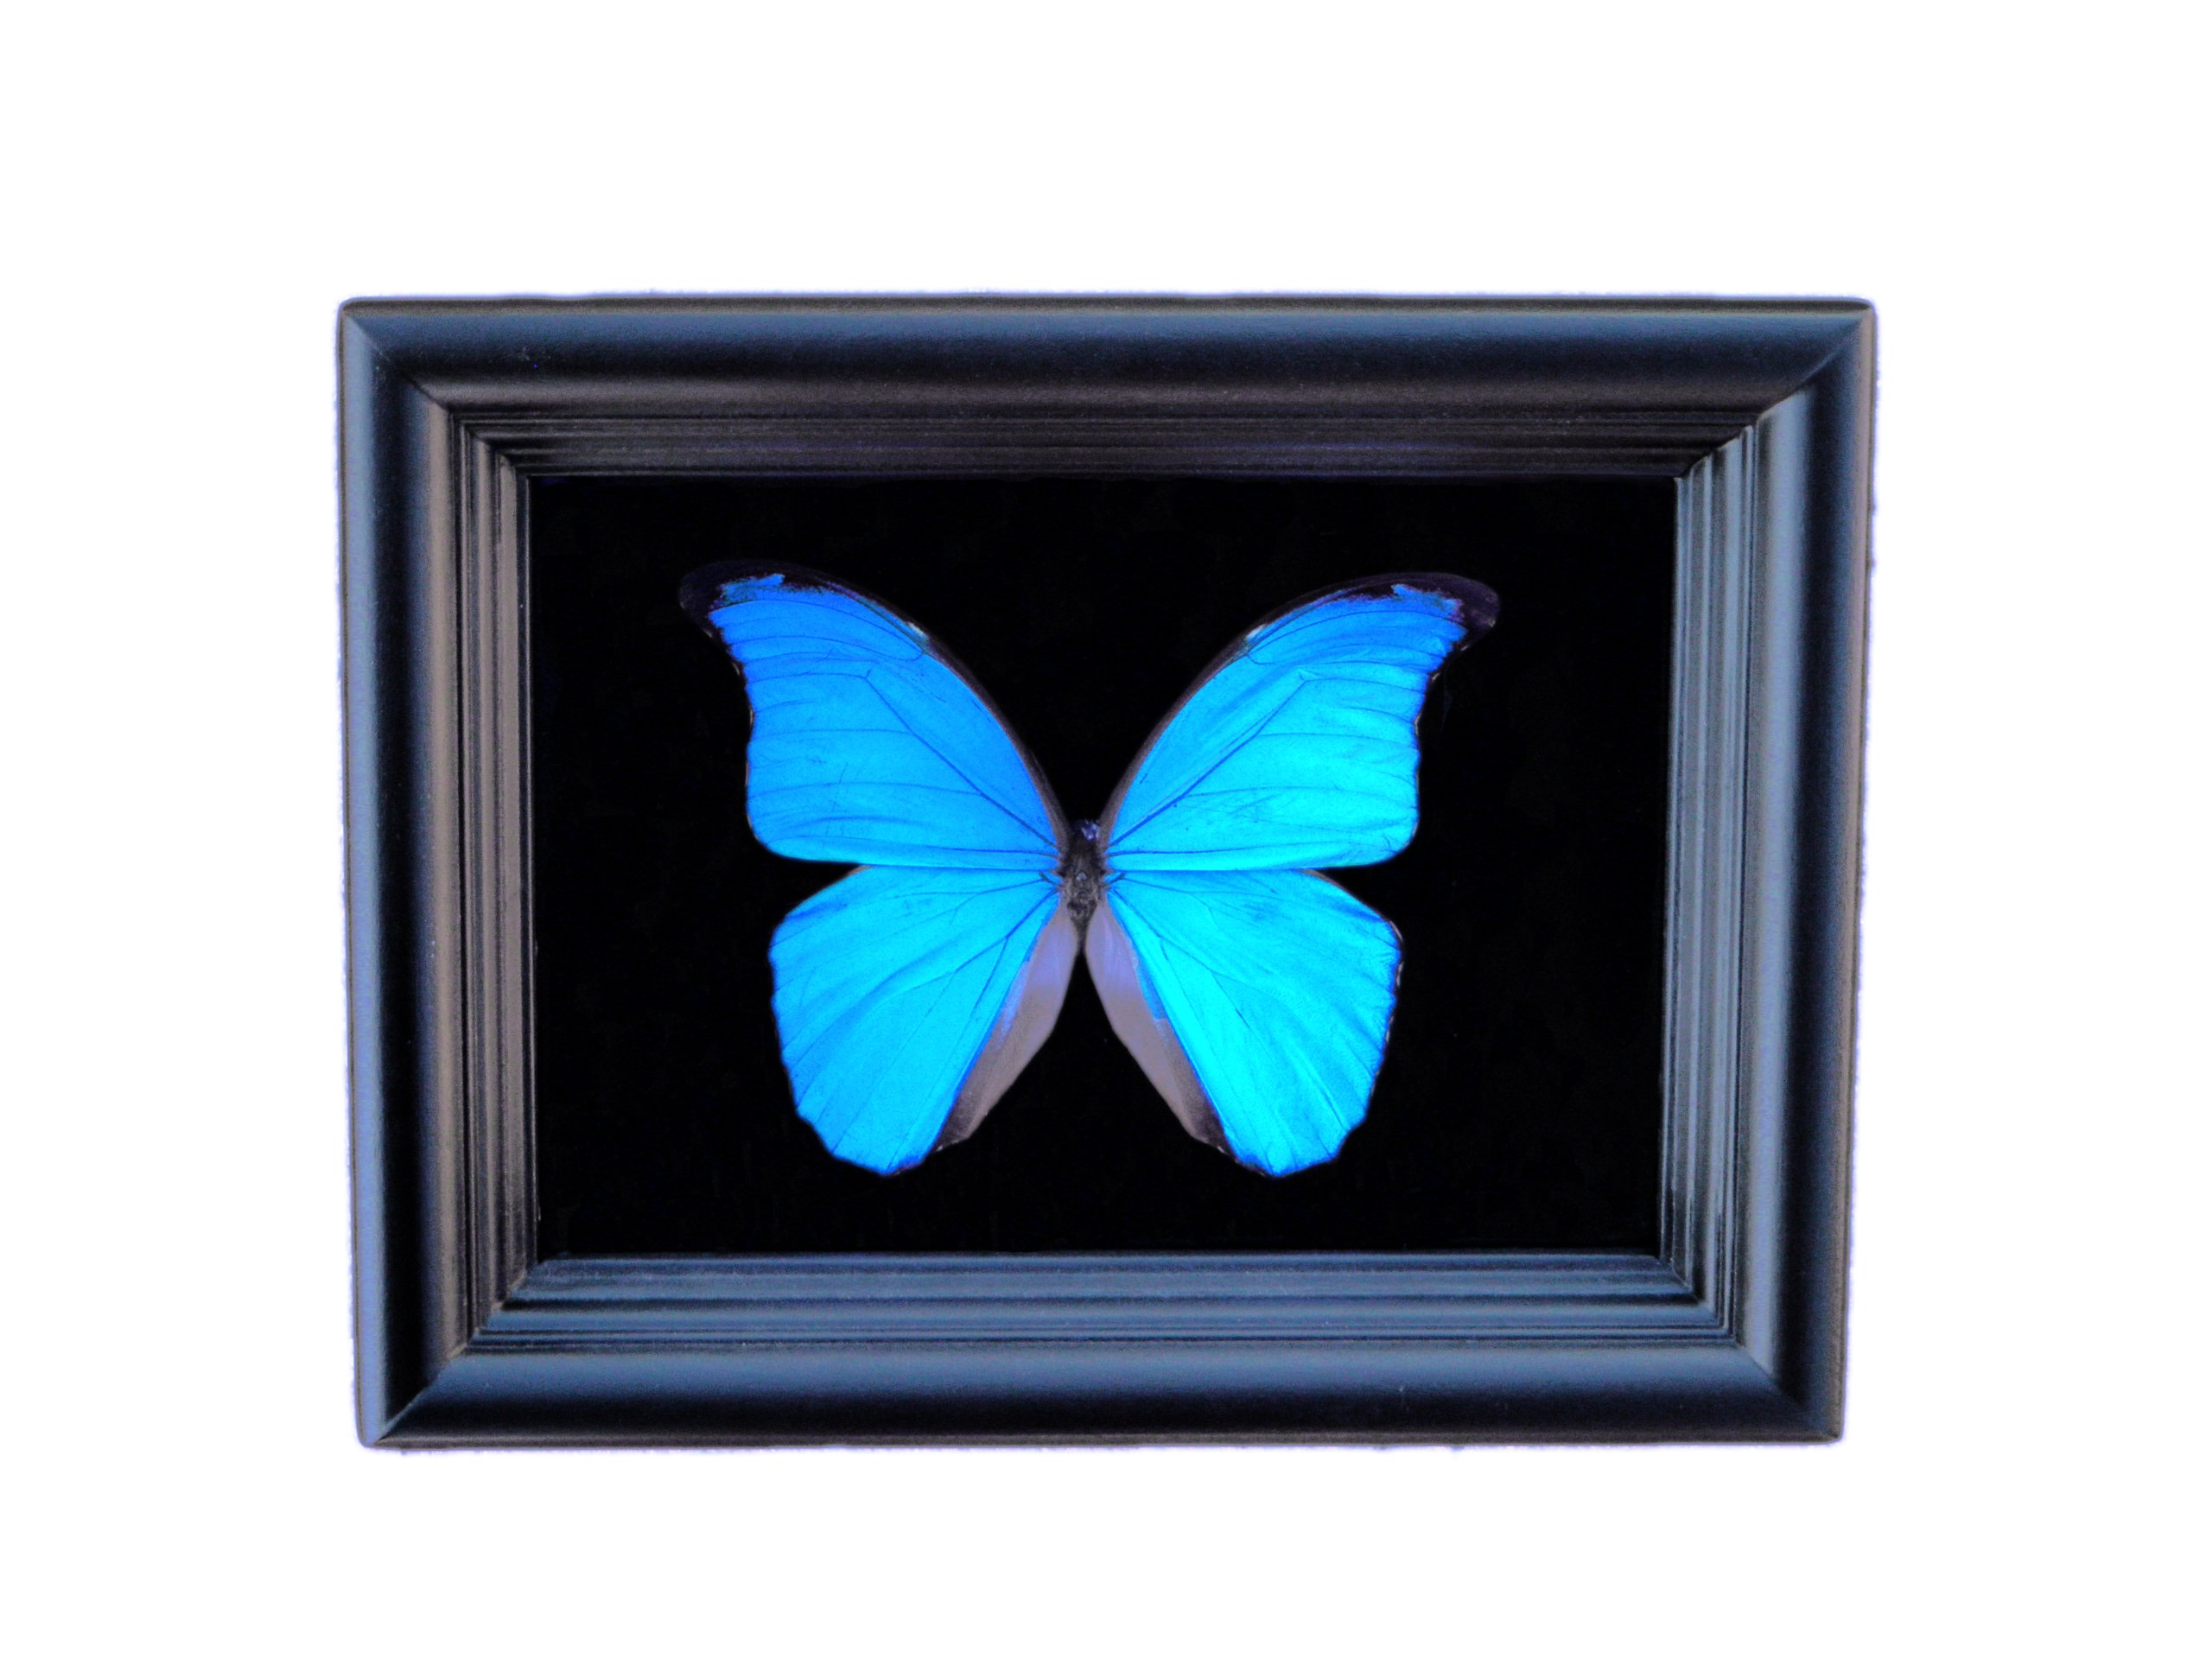 Real Butterfly Taxidermy Art - Insect Art, Bug Art, Bugs, Insects, Taxidermy, Entomologist, Butterflies, Butterfly Decor, Interior Design, Home Decor